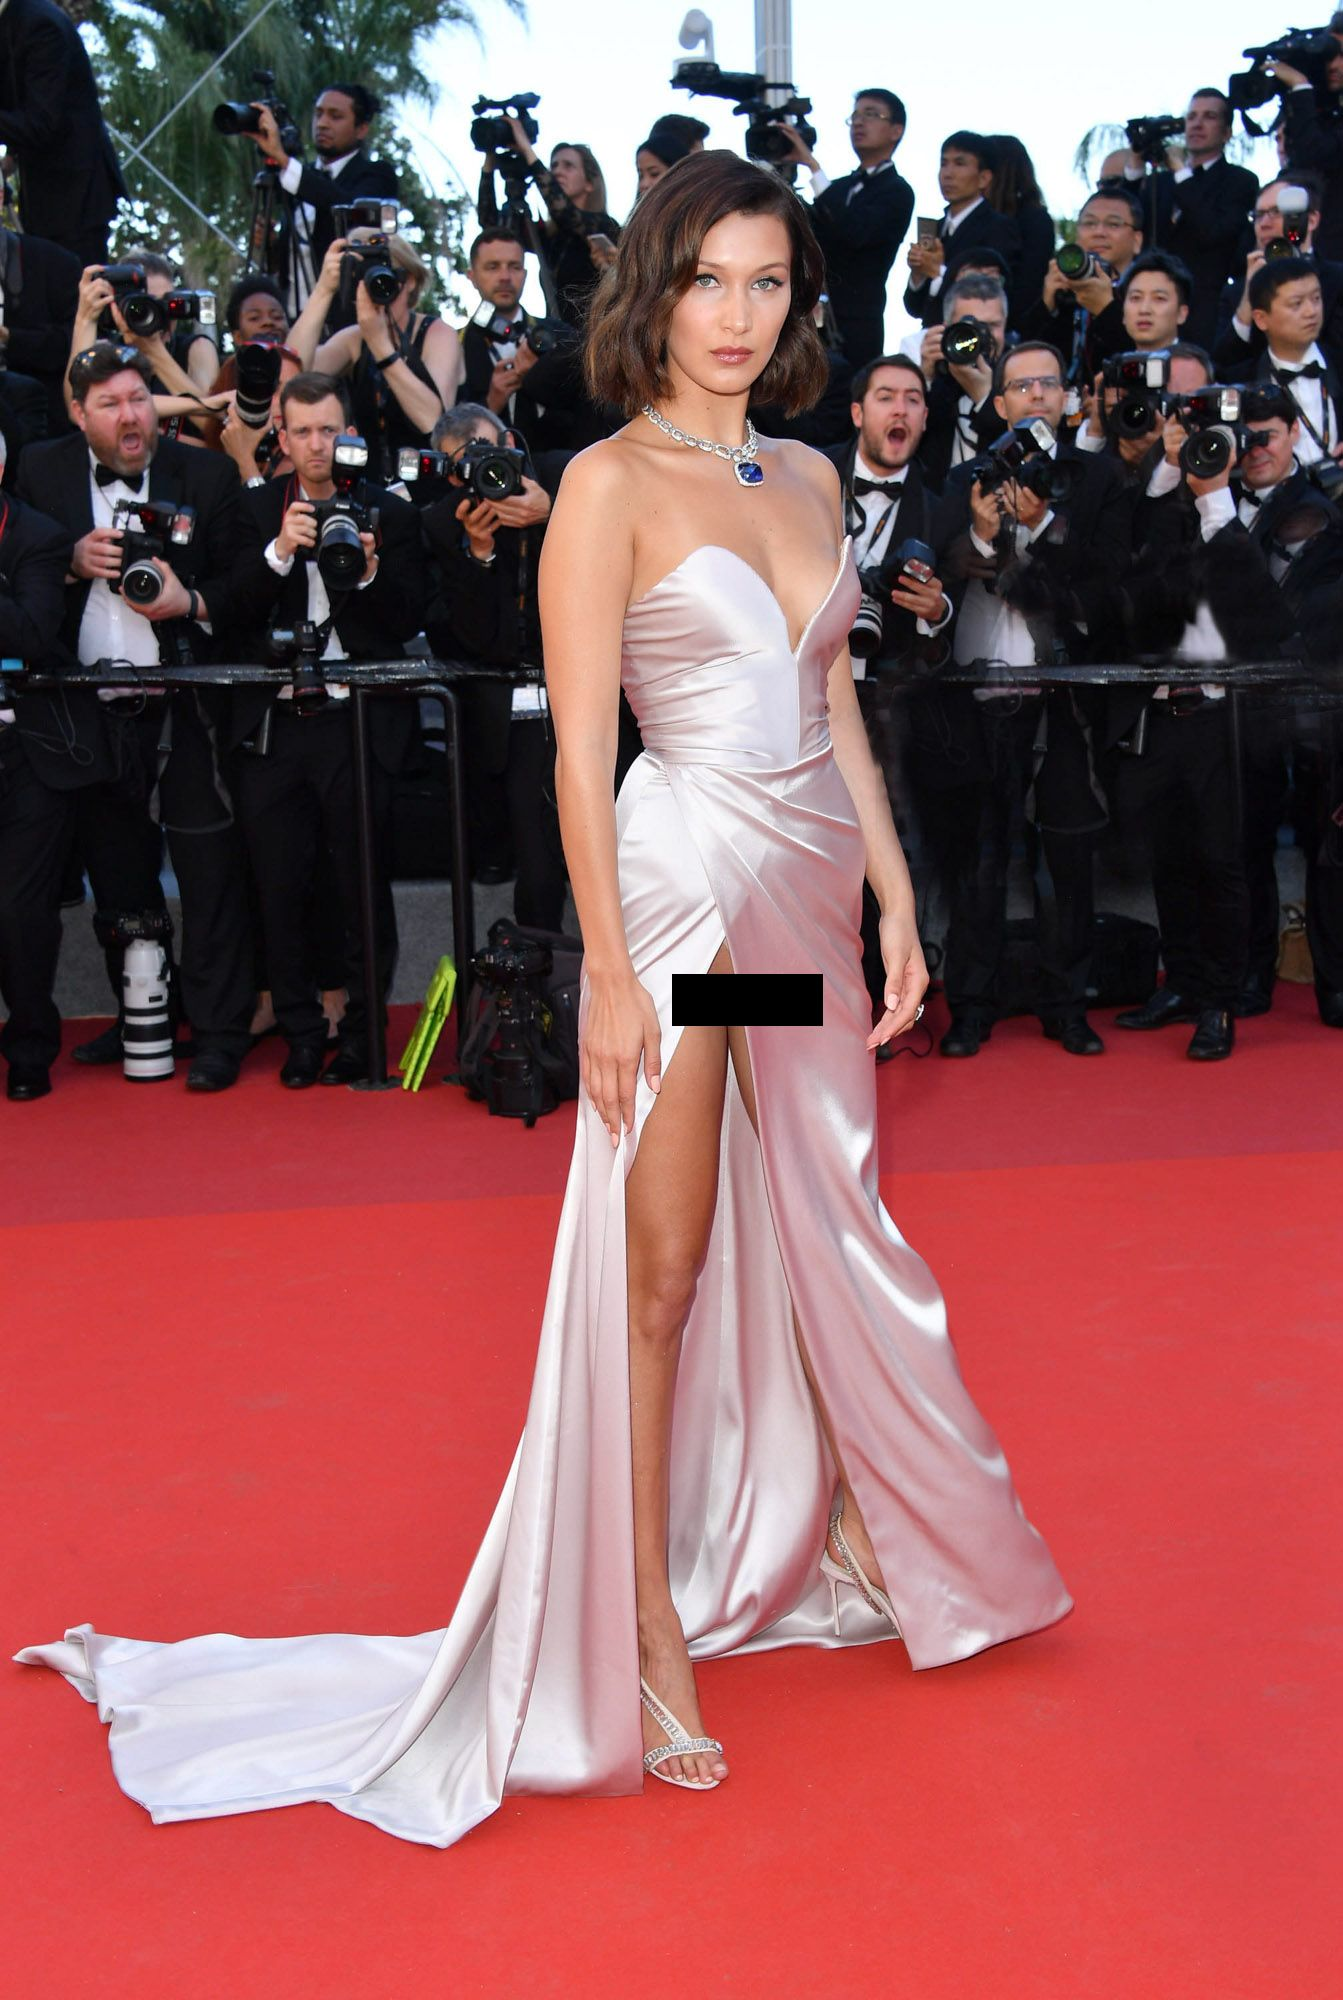 The 29 Most NSFW Celebrity WardrobeMalfunctions images